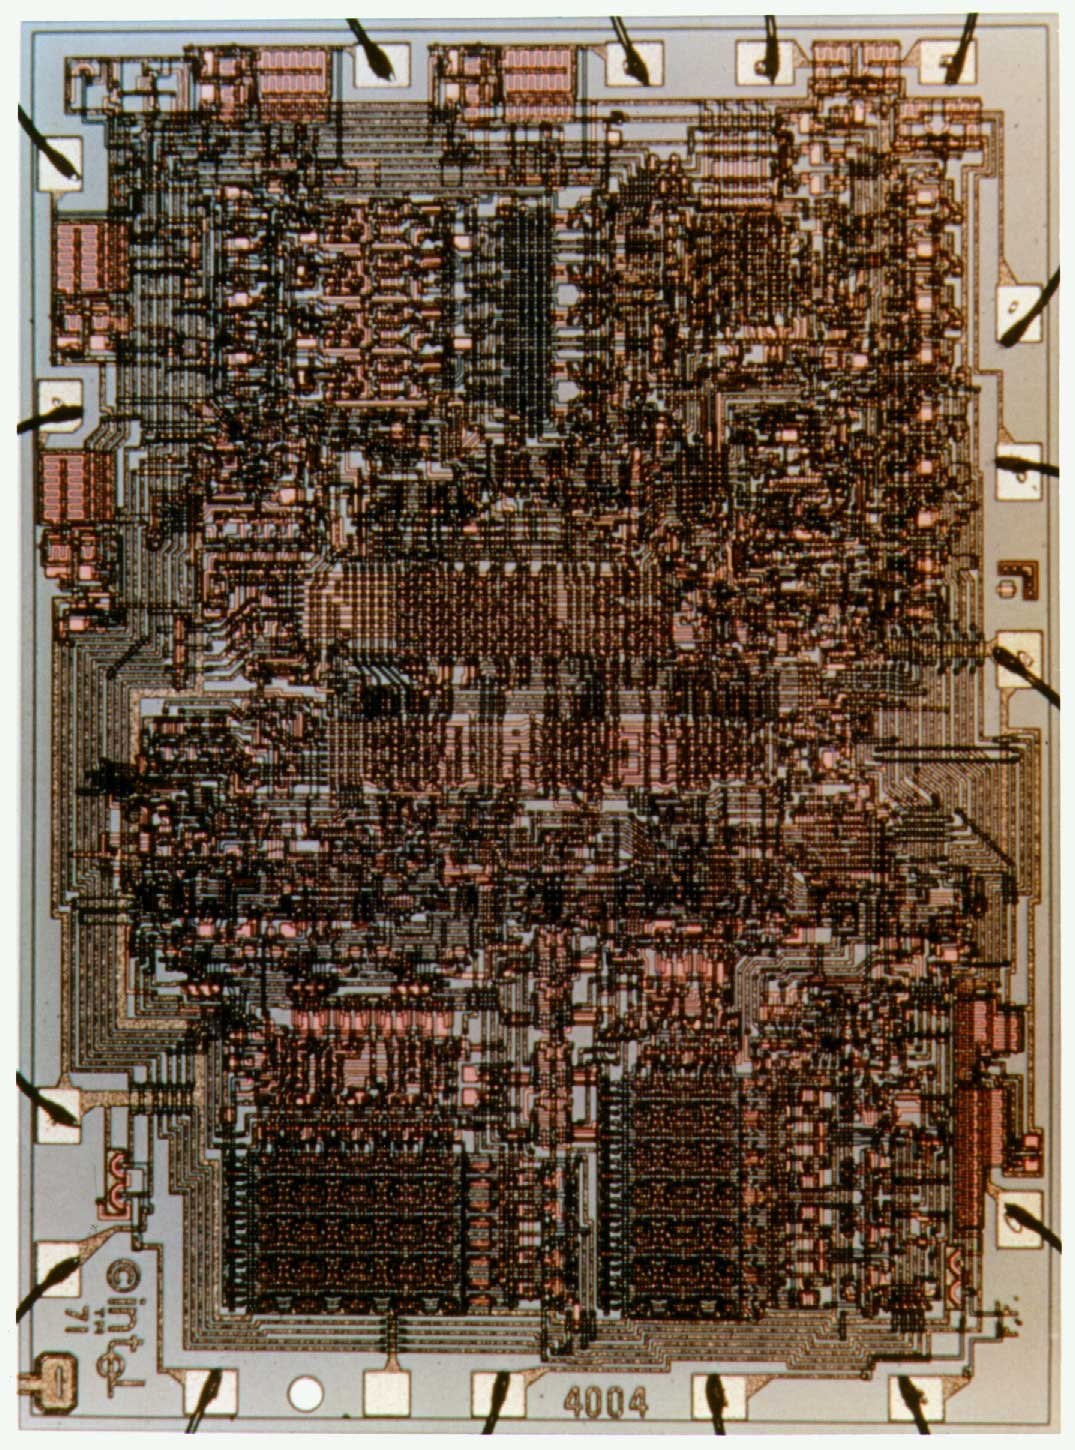 history of the microprocessor California state history competition documentary how far the microprocessor has come, and how much it has changed the world shout outs too the following: steve smith, tom waldrop, mike schmidt.